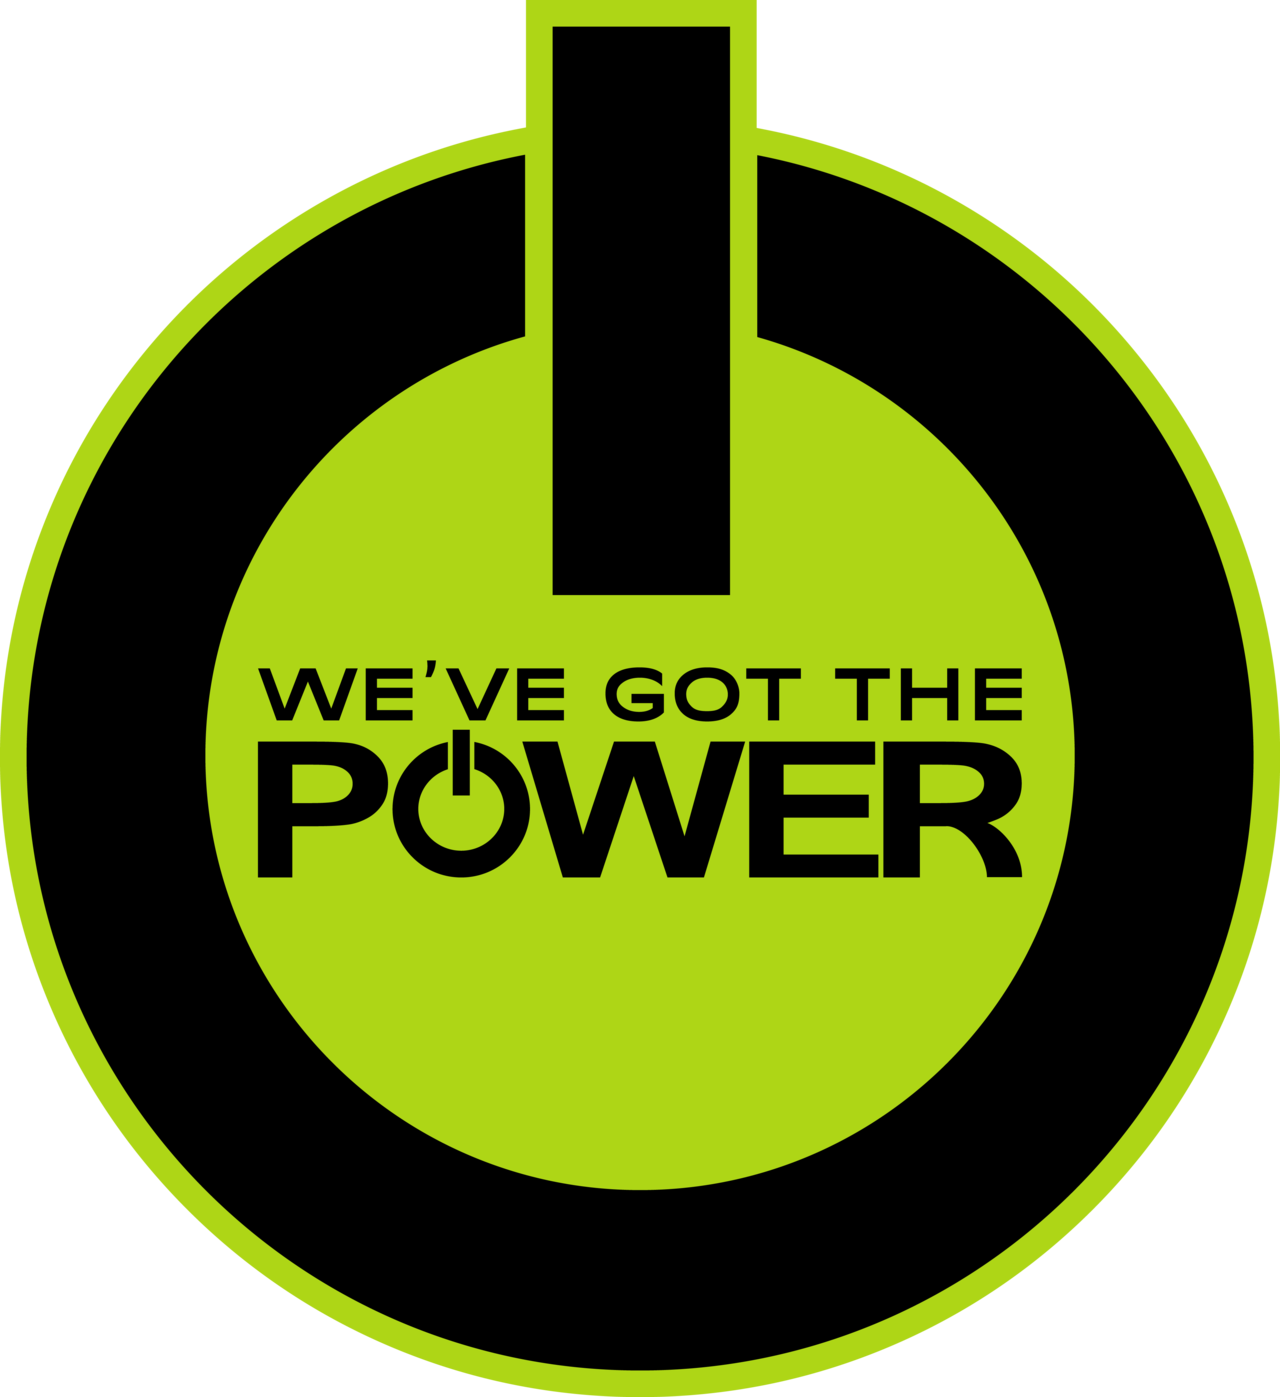 Electricity clipart discovery. Power logos